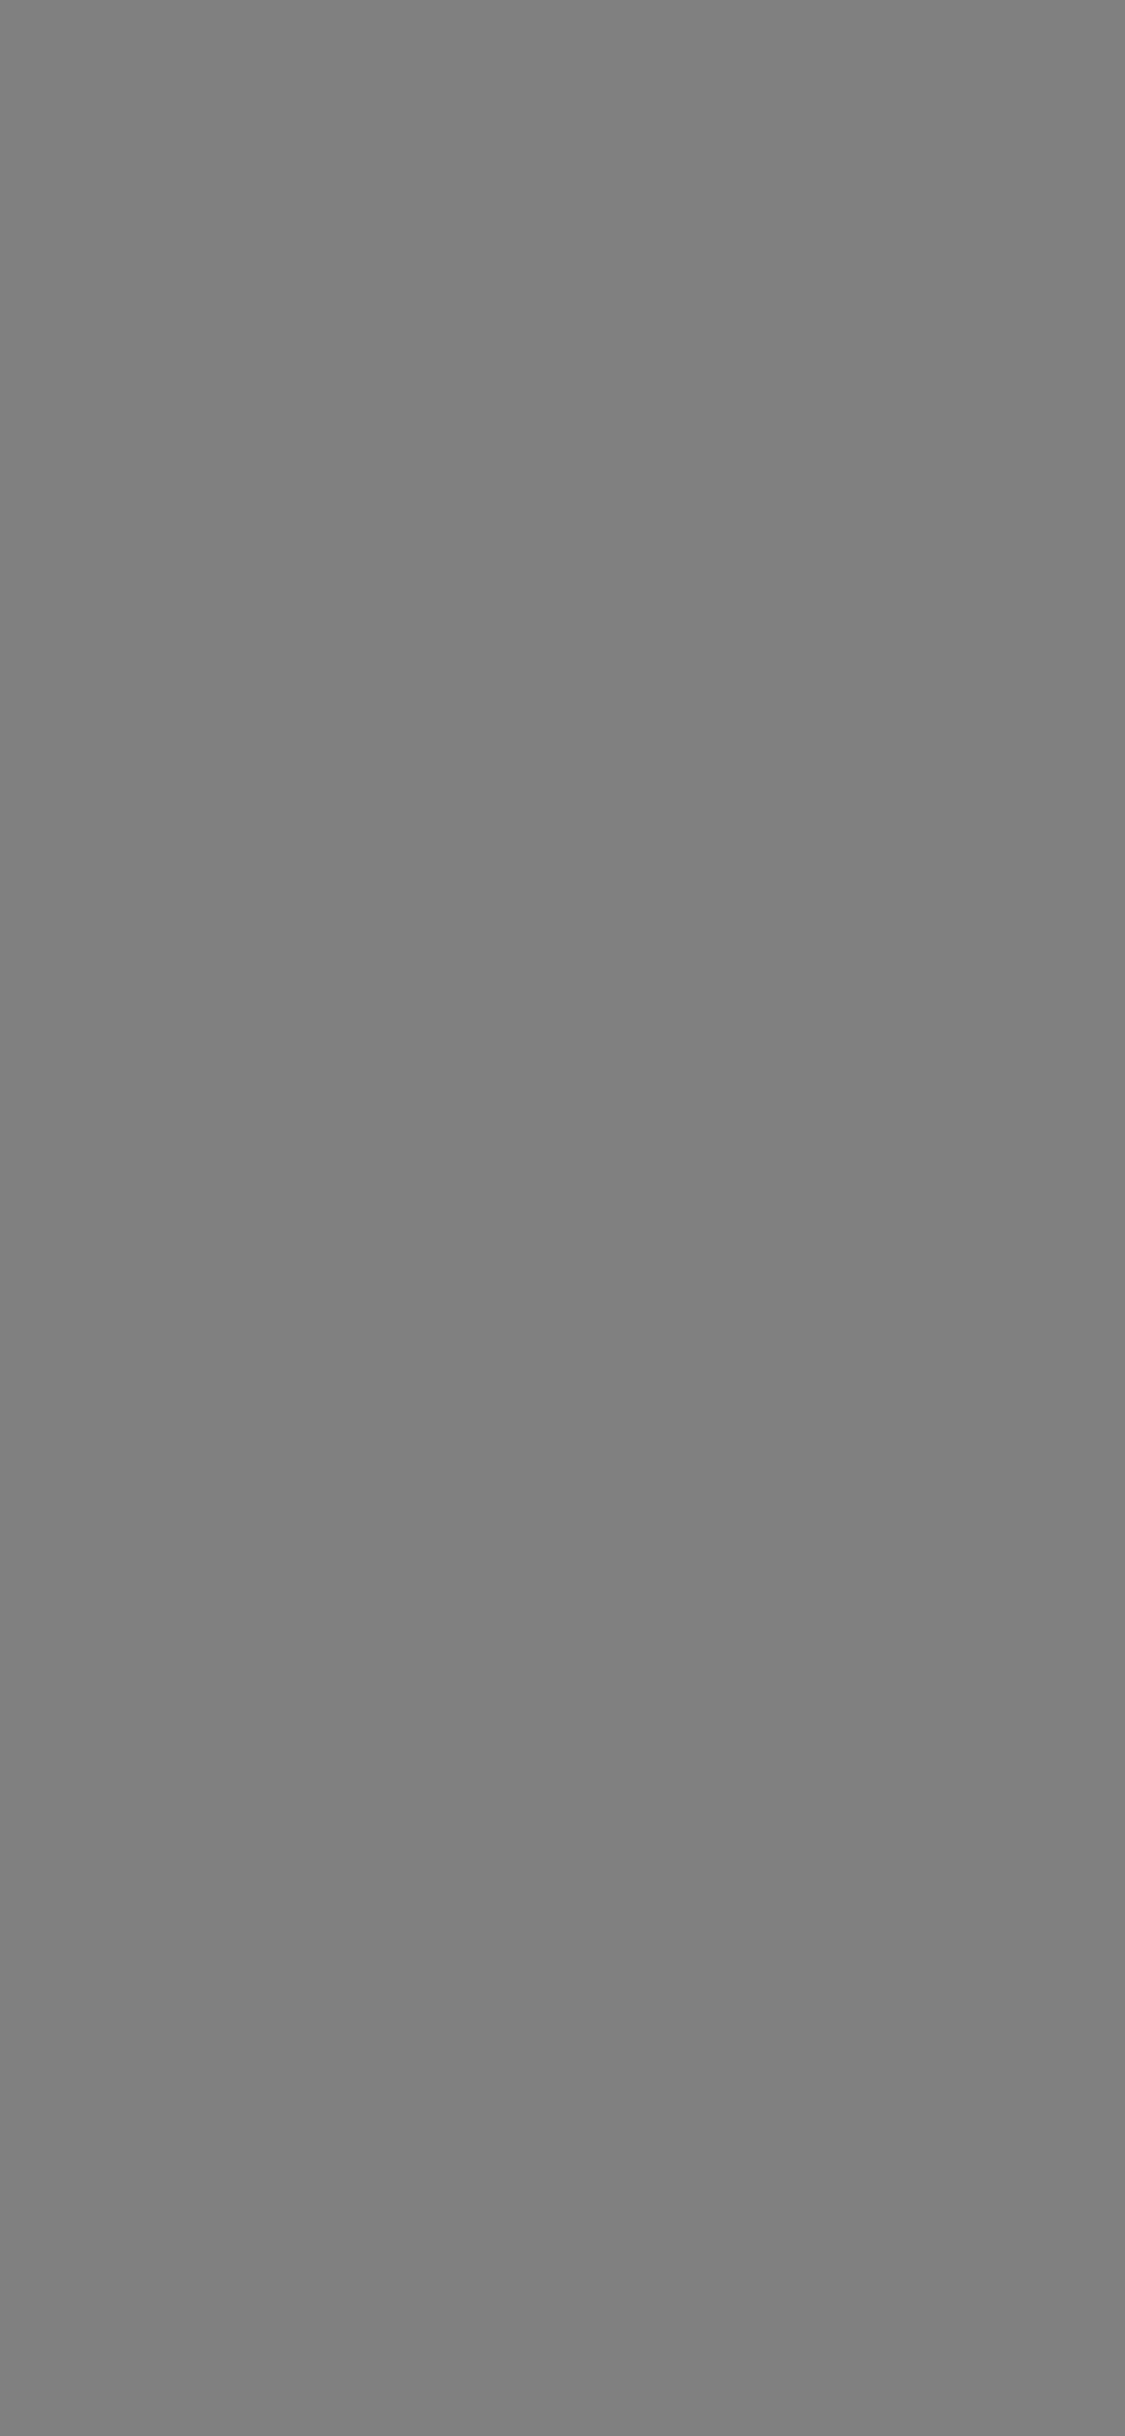 1125x2436 Gray Web Gray Solid Color Background